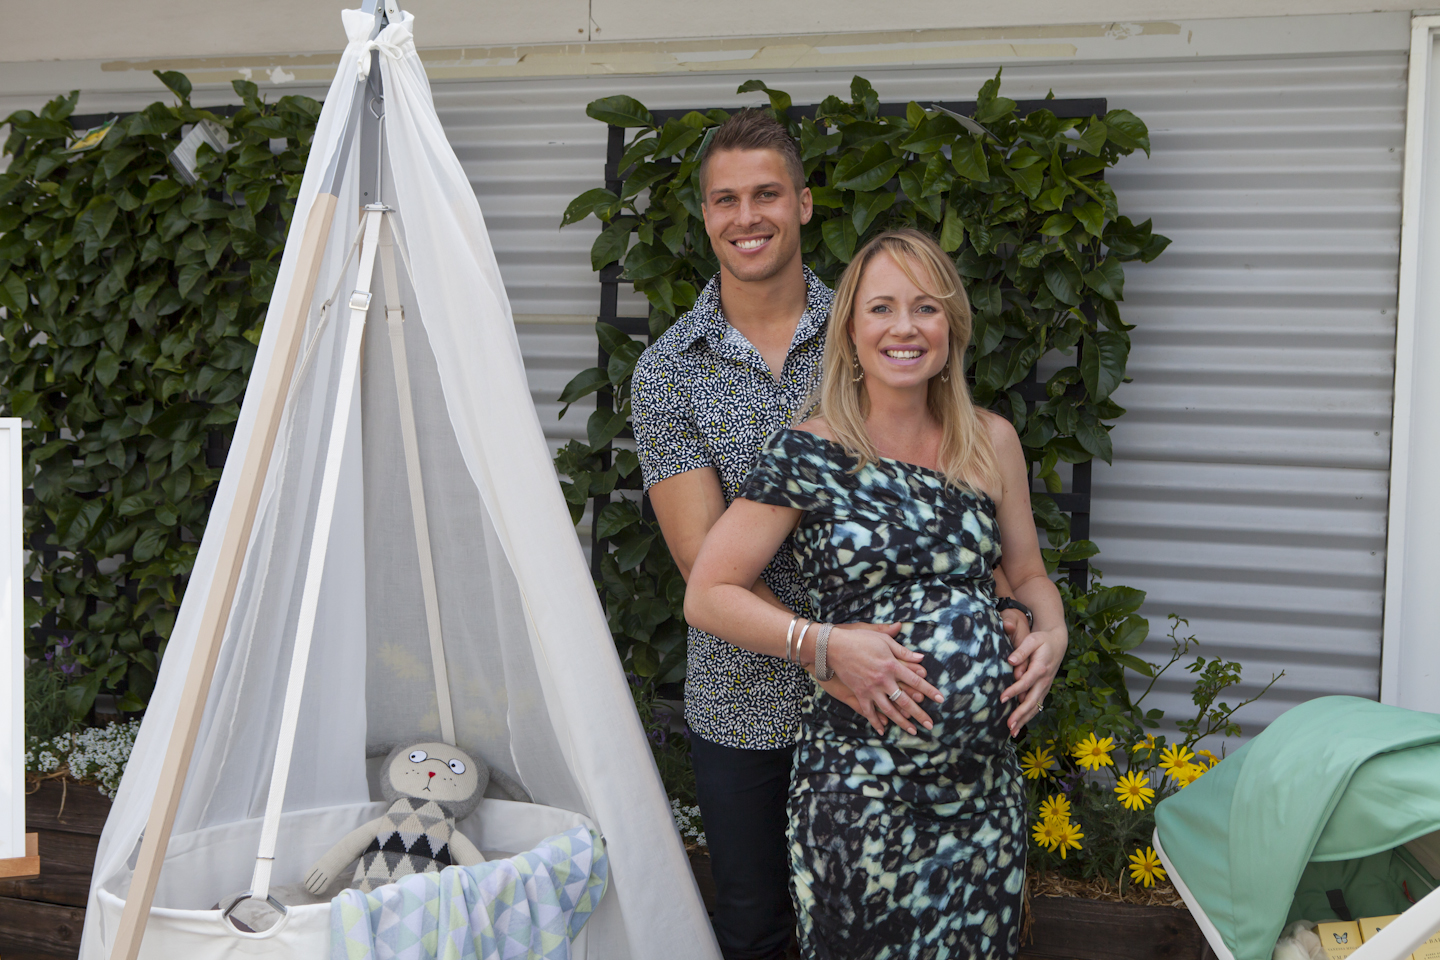 Andrew & Elise Swallow's Baby shower presented by Mum's Grapvine pic: my little tribe